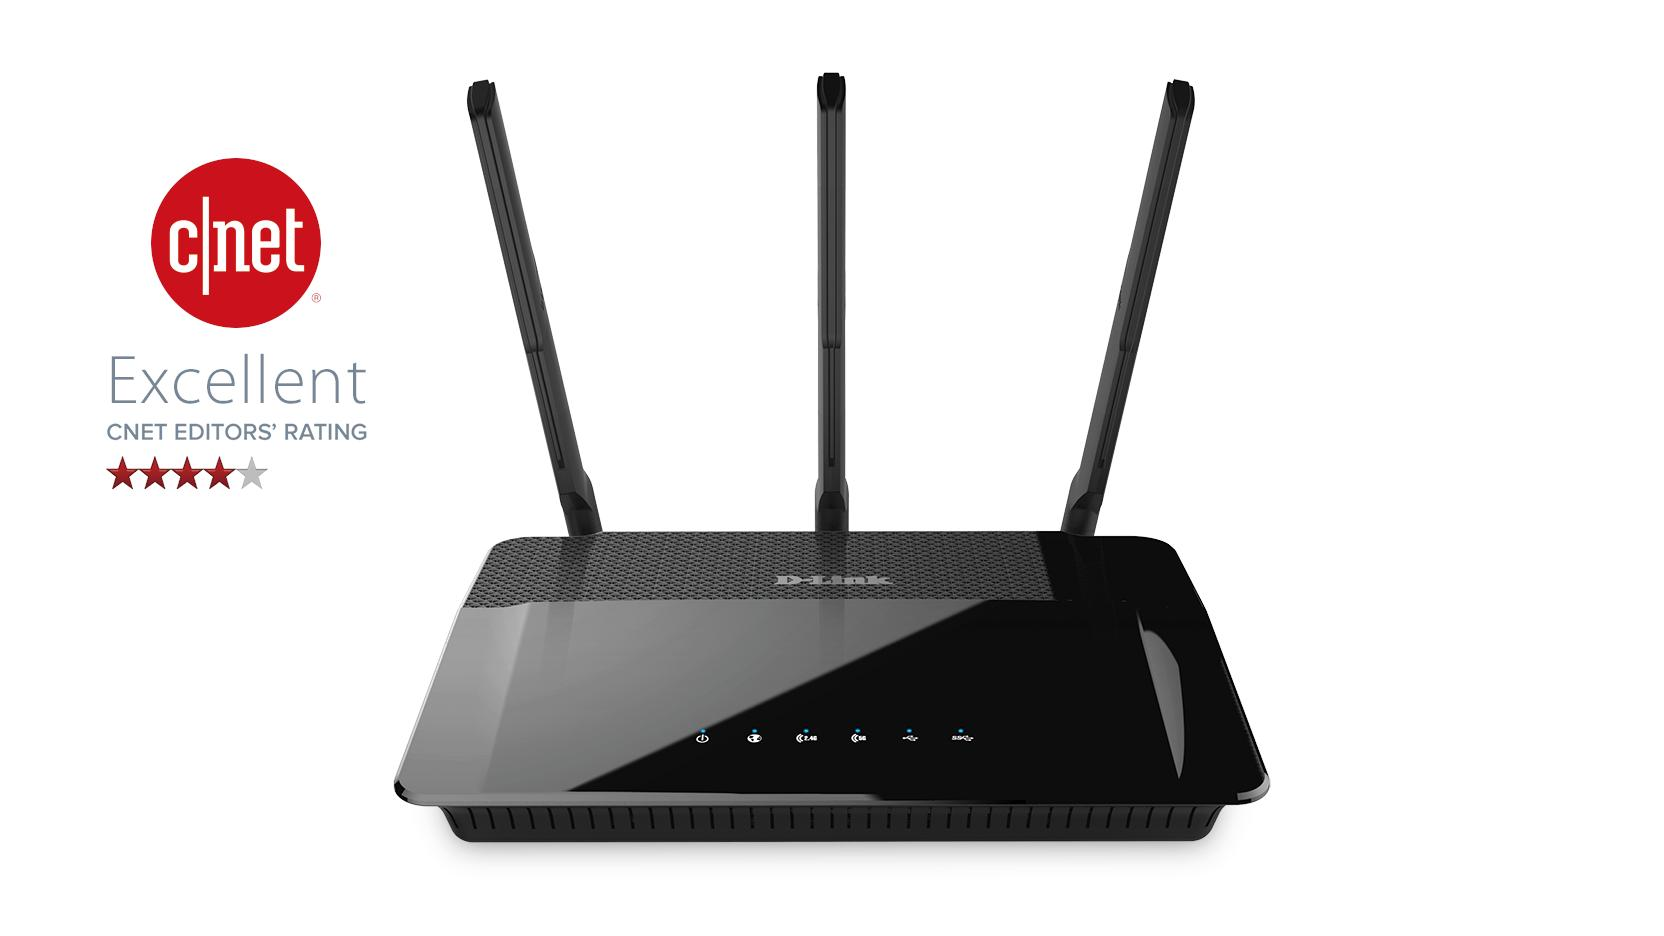 Wireless AC1900 Dual Band Gigabit Cloud Router